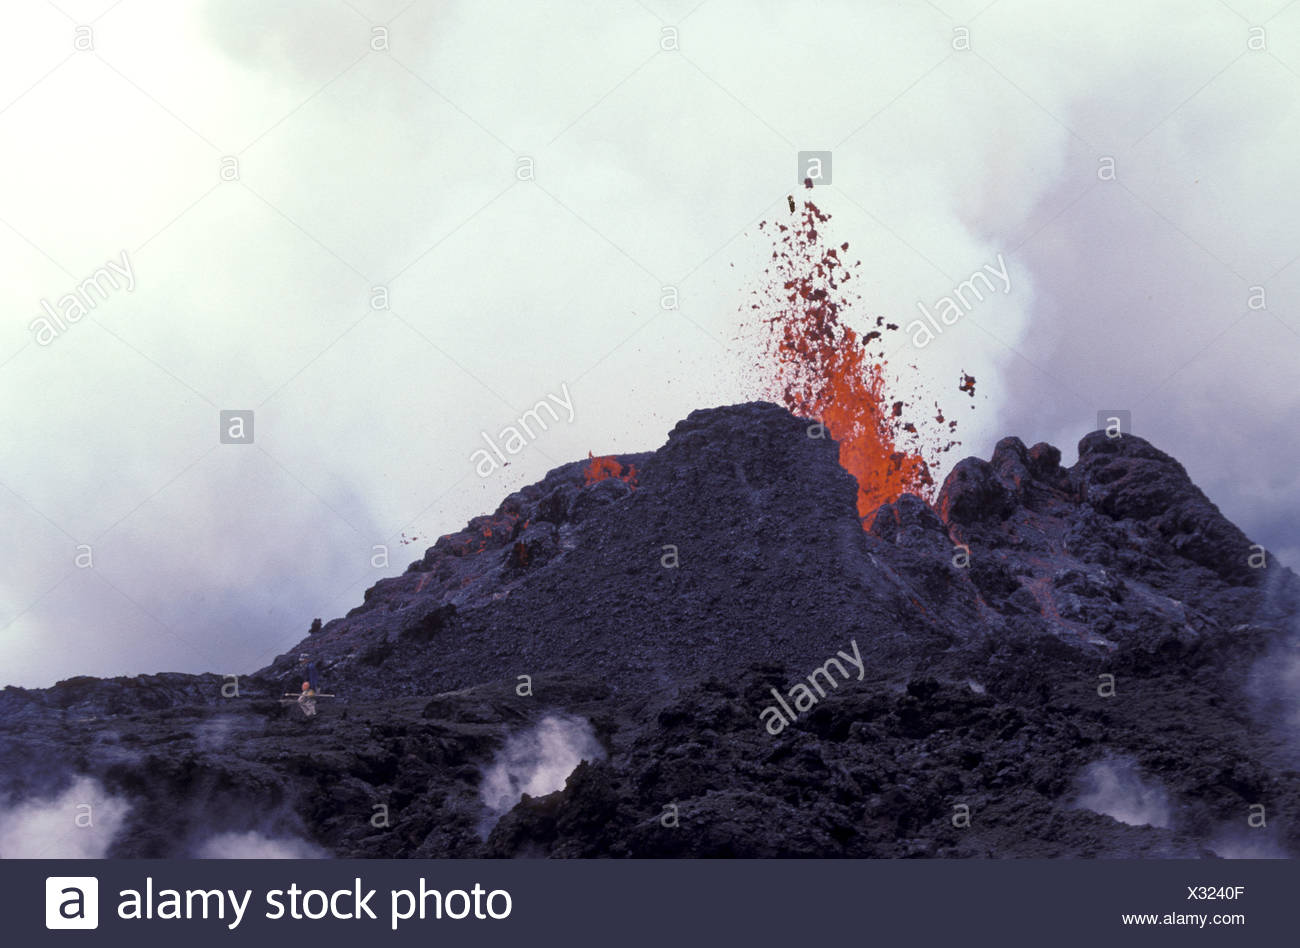 Fountaining eruption from Kilauea's first eruption in 1983 at puu oo vent, Hawaii volcanoes national park, Big island - Stock Image